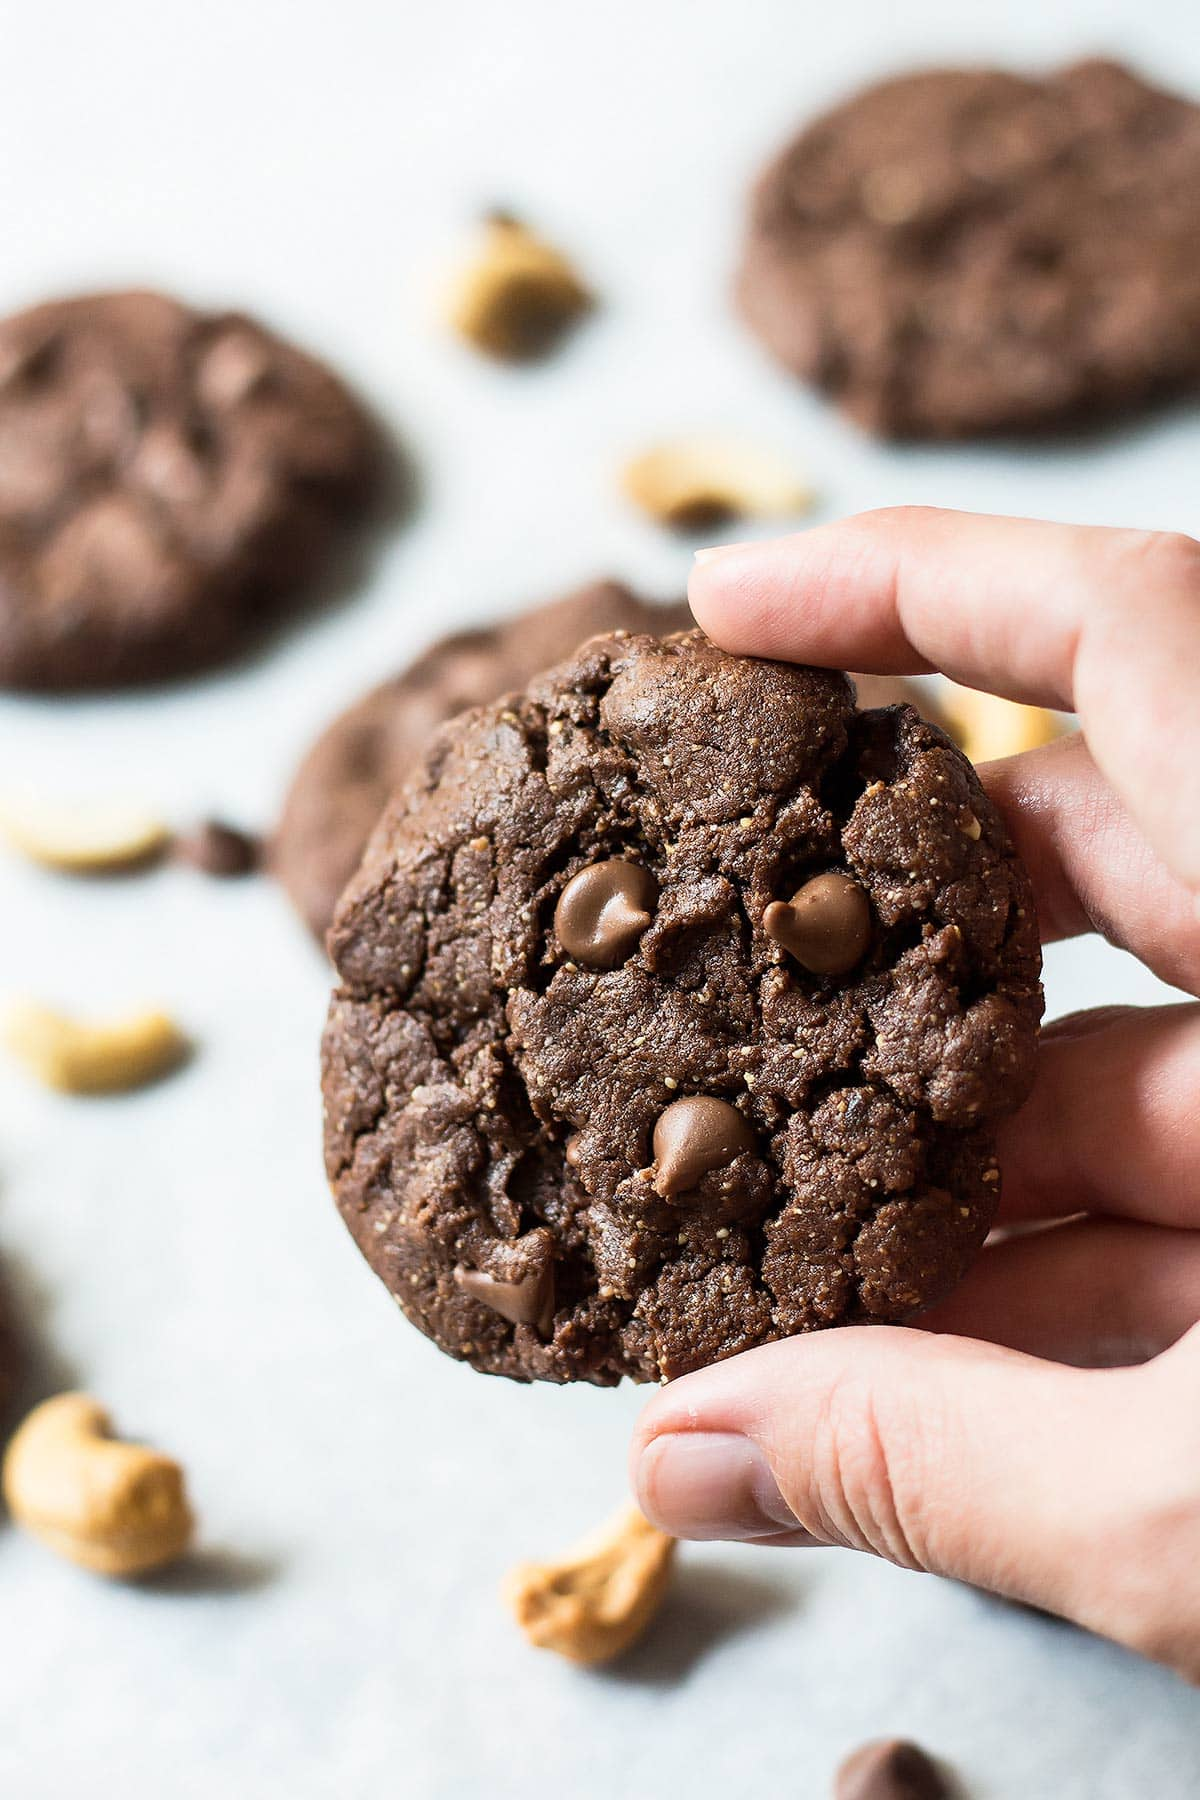 Hand holding flourless chocolate cookie